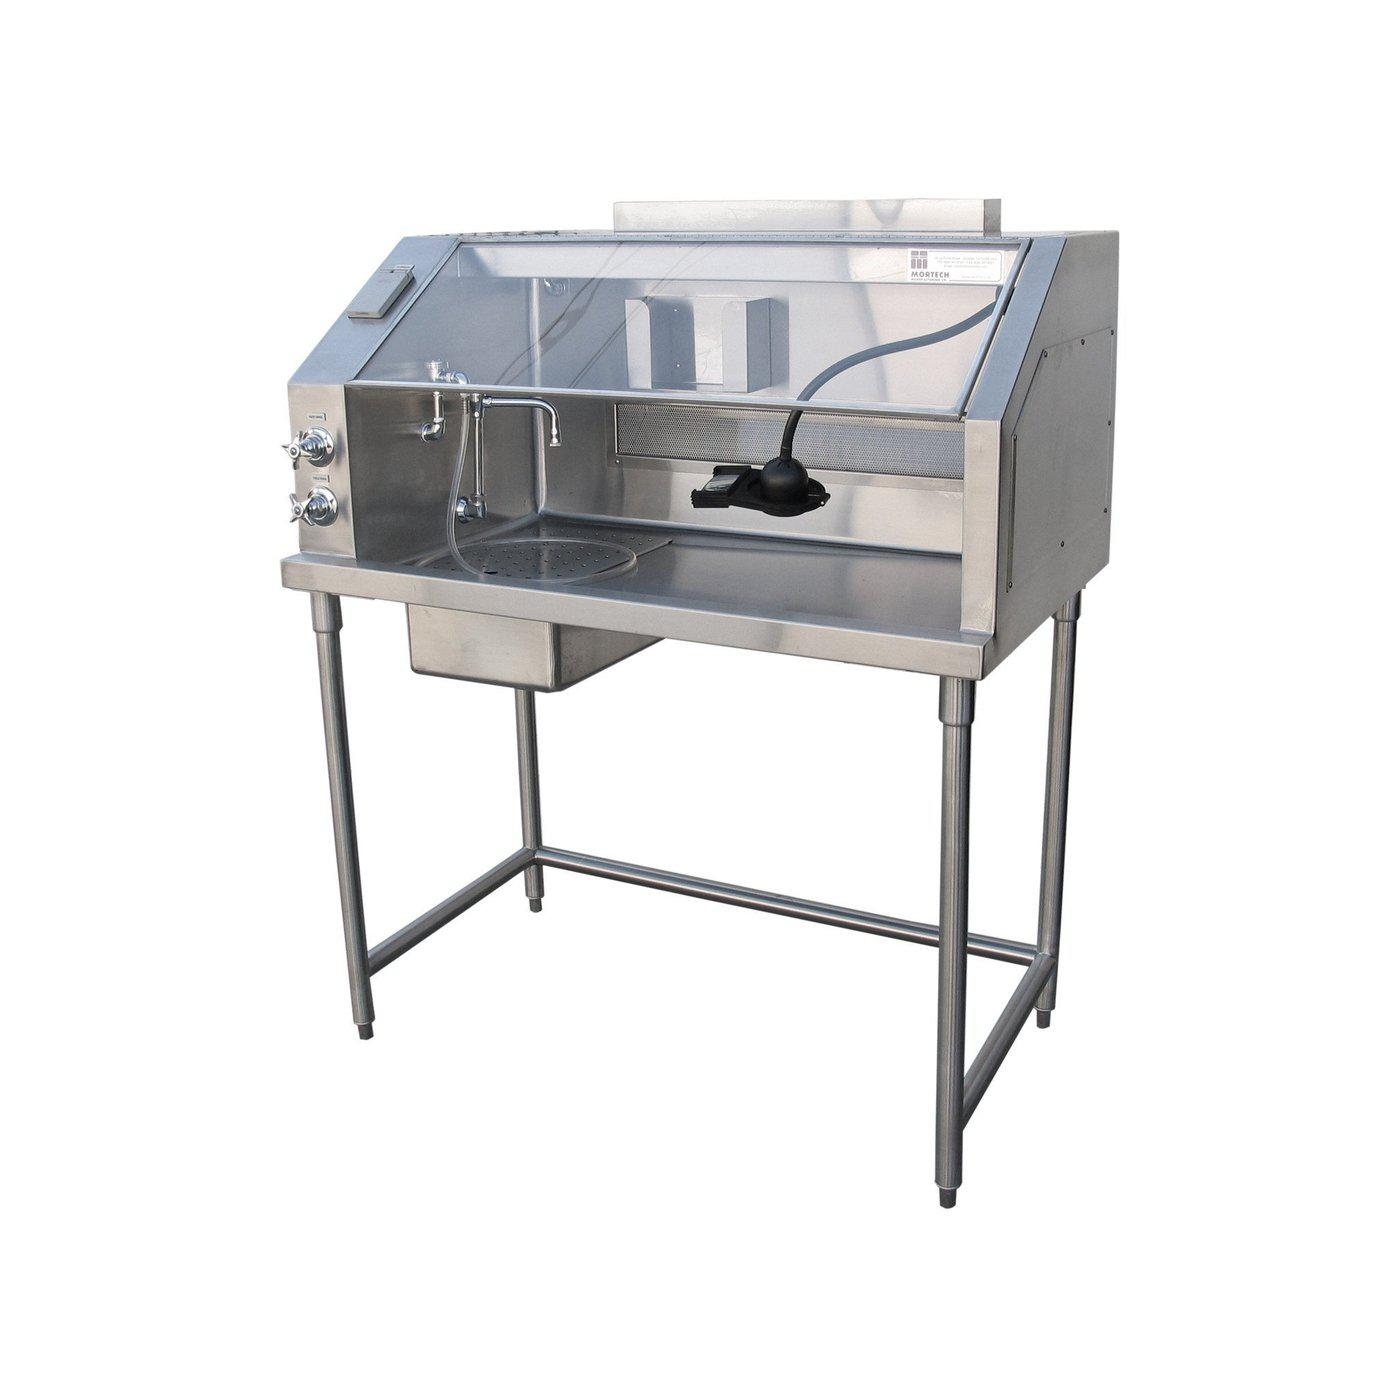 Ventilated Hood Dissection Table-Necropsy Dissection Tables-Mortech Manufacturing Company Inc. Quality Stainless Steel Autopsy, Morgue, Funeral Home, Necropsy, Veterinary / Anatomy, Dissection Equipment and Accessories